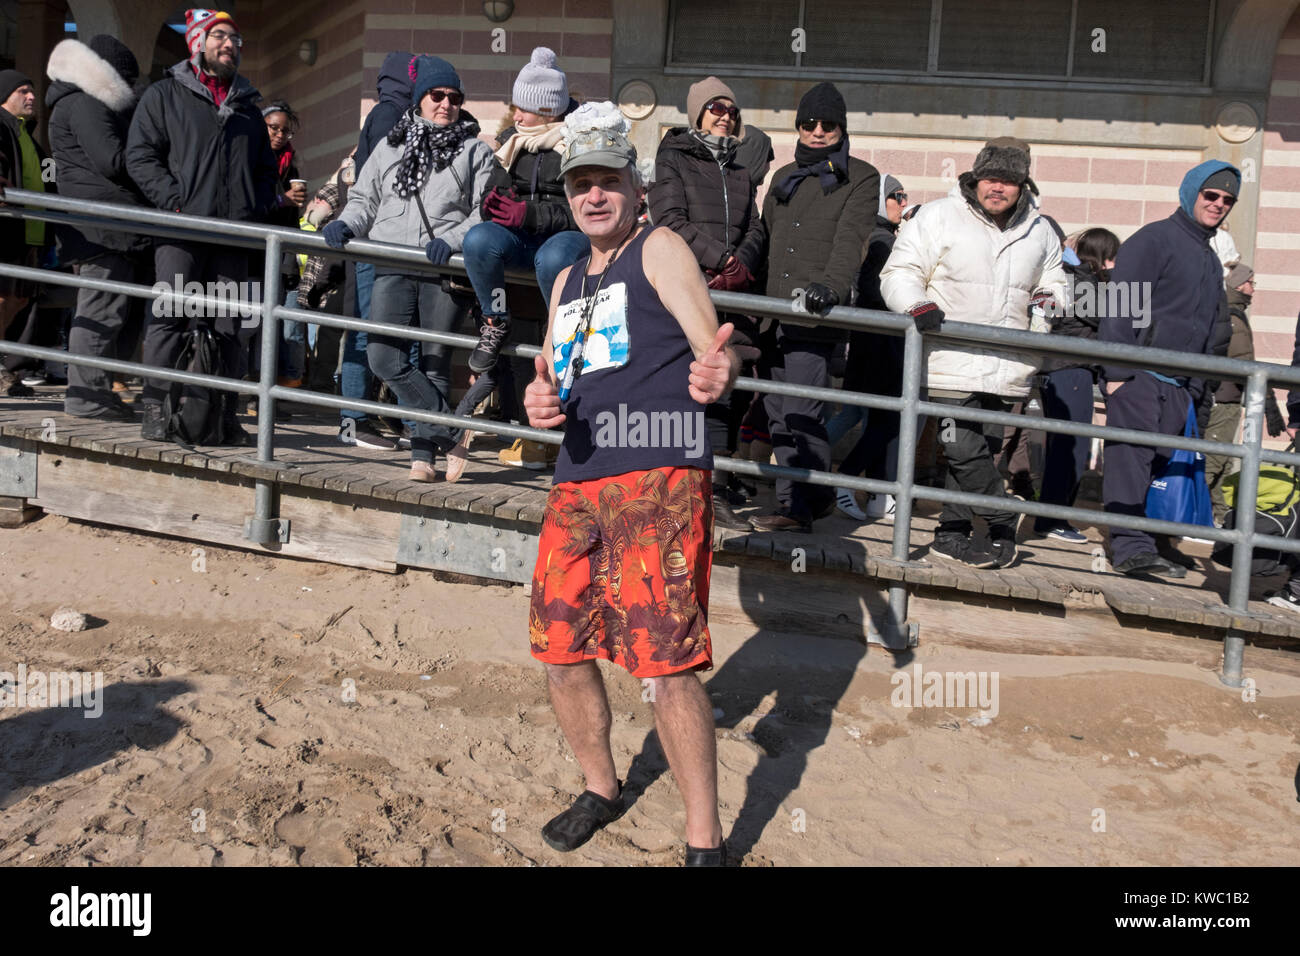 A Polar Bear Club member with spectators behind him at the 114th Polar Bear Club New Year's Day swim. - Stock Image